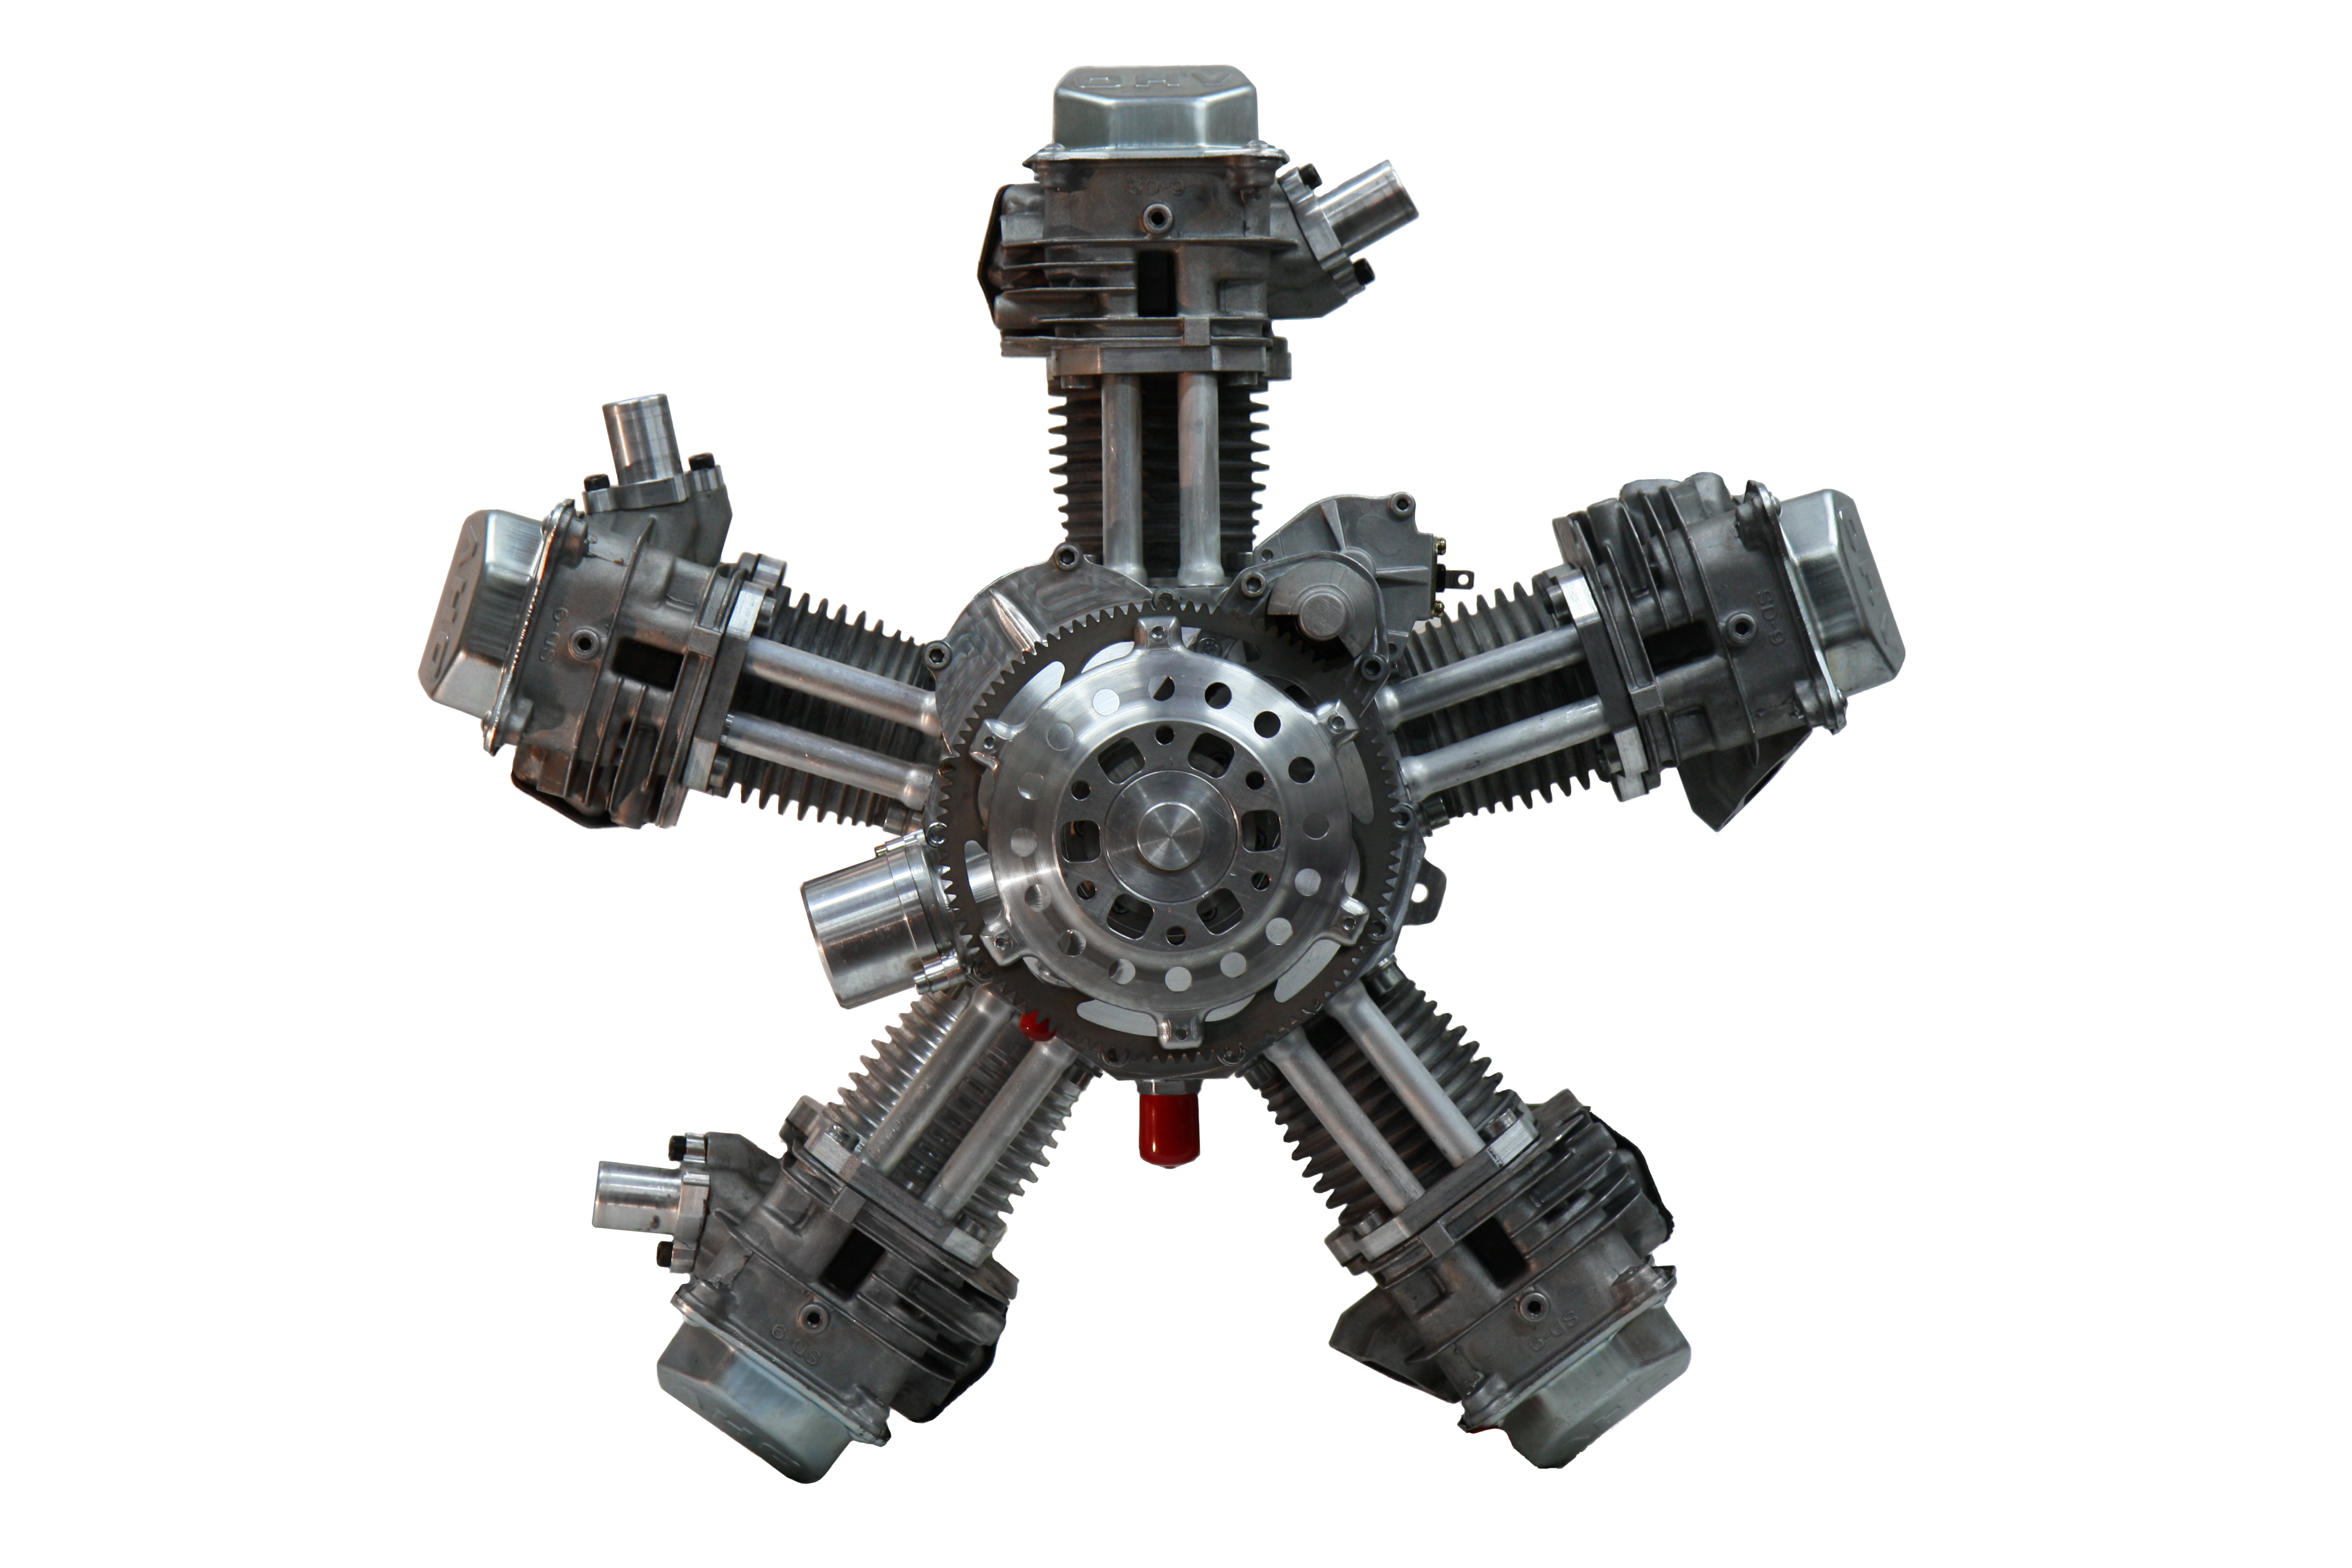 Gears clipart mechanical energy. Engine motors png image